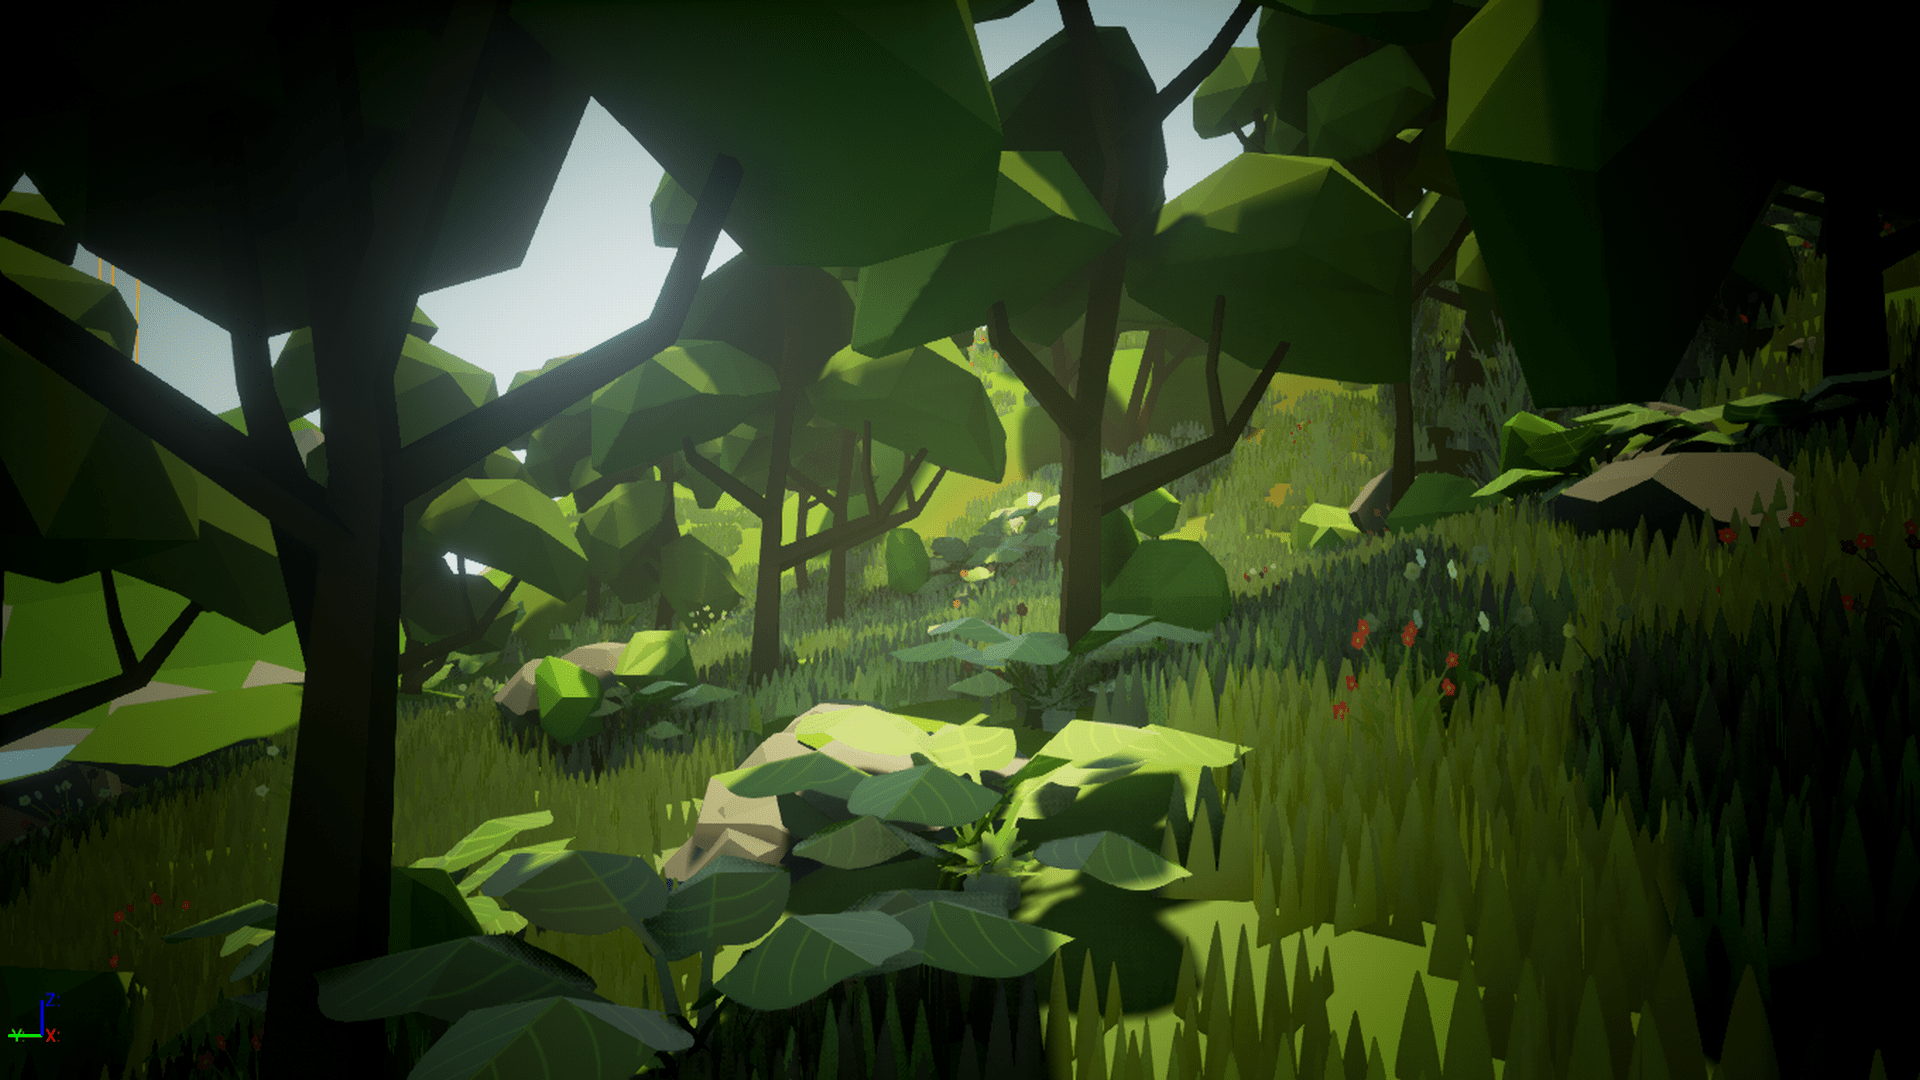 Olbert S Low Poly Forest By Whitman And Olbert In